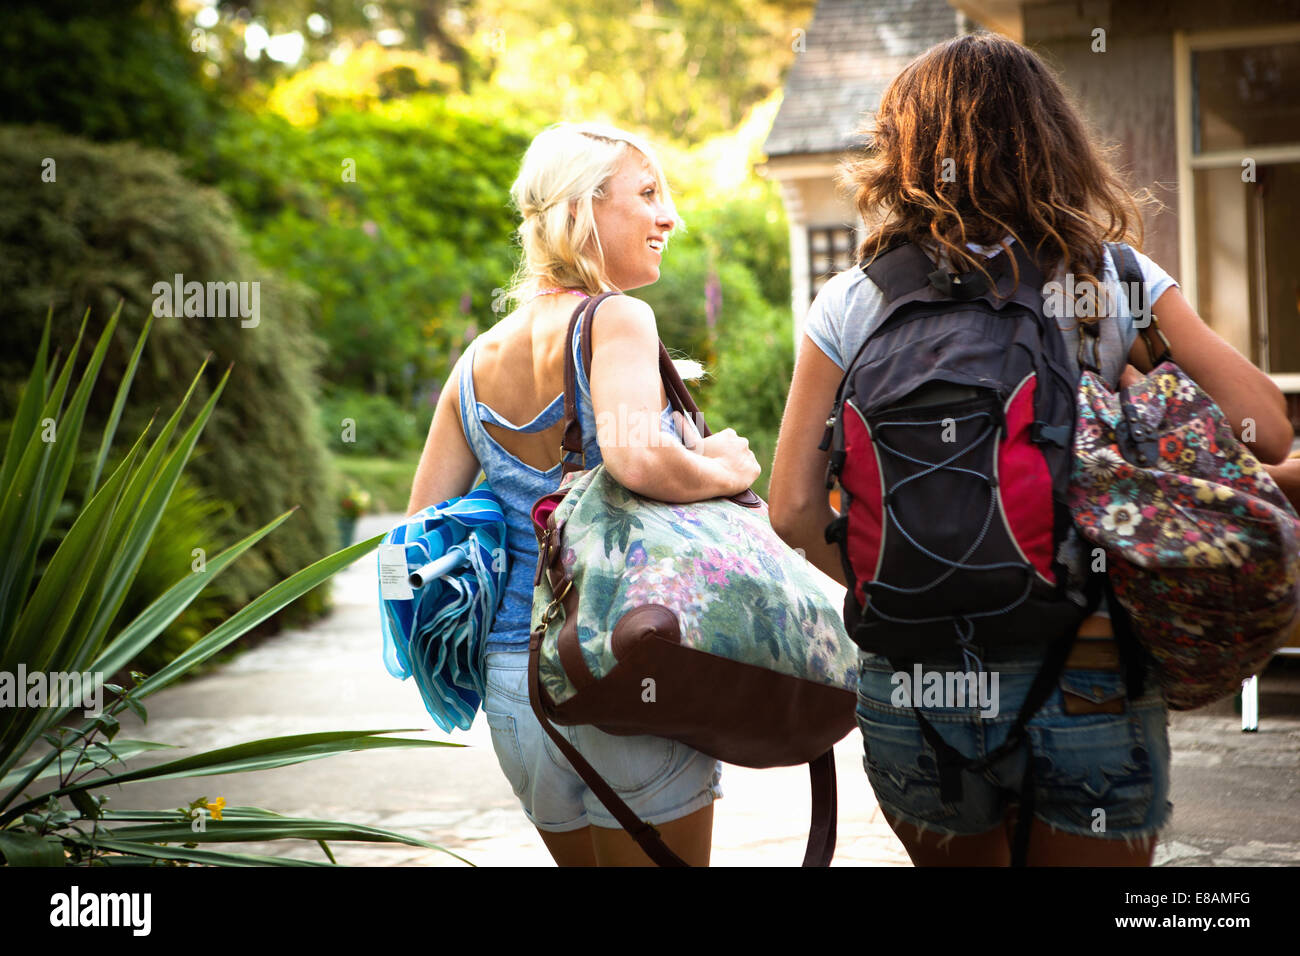 Rear view of two female friends out walking with backpack and bags - Stock Image